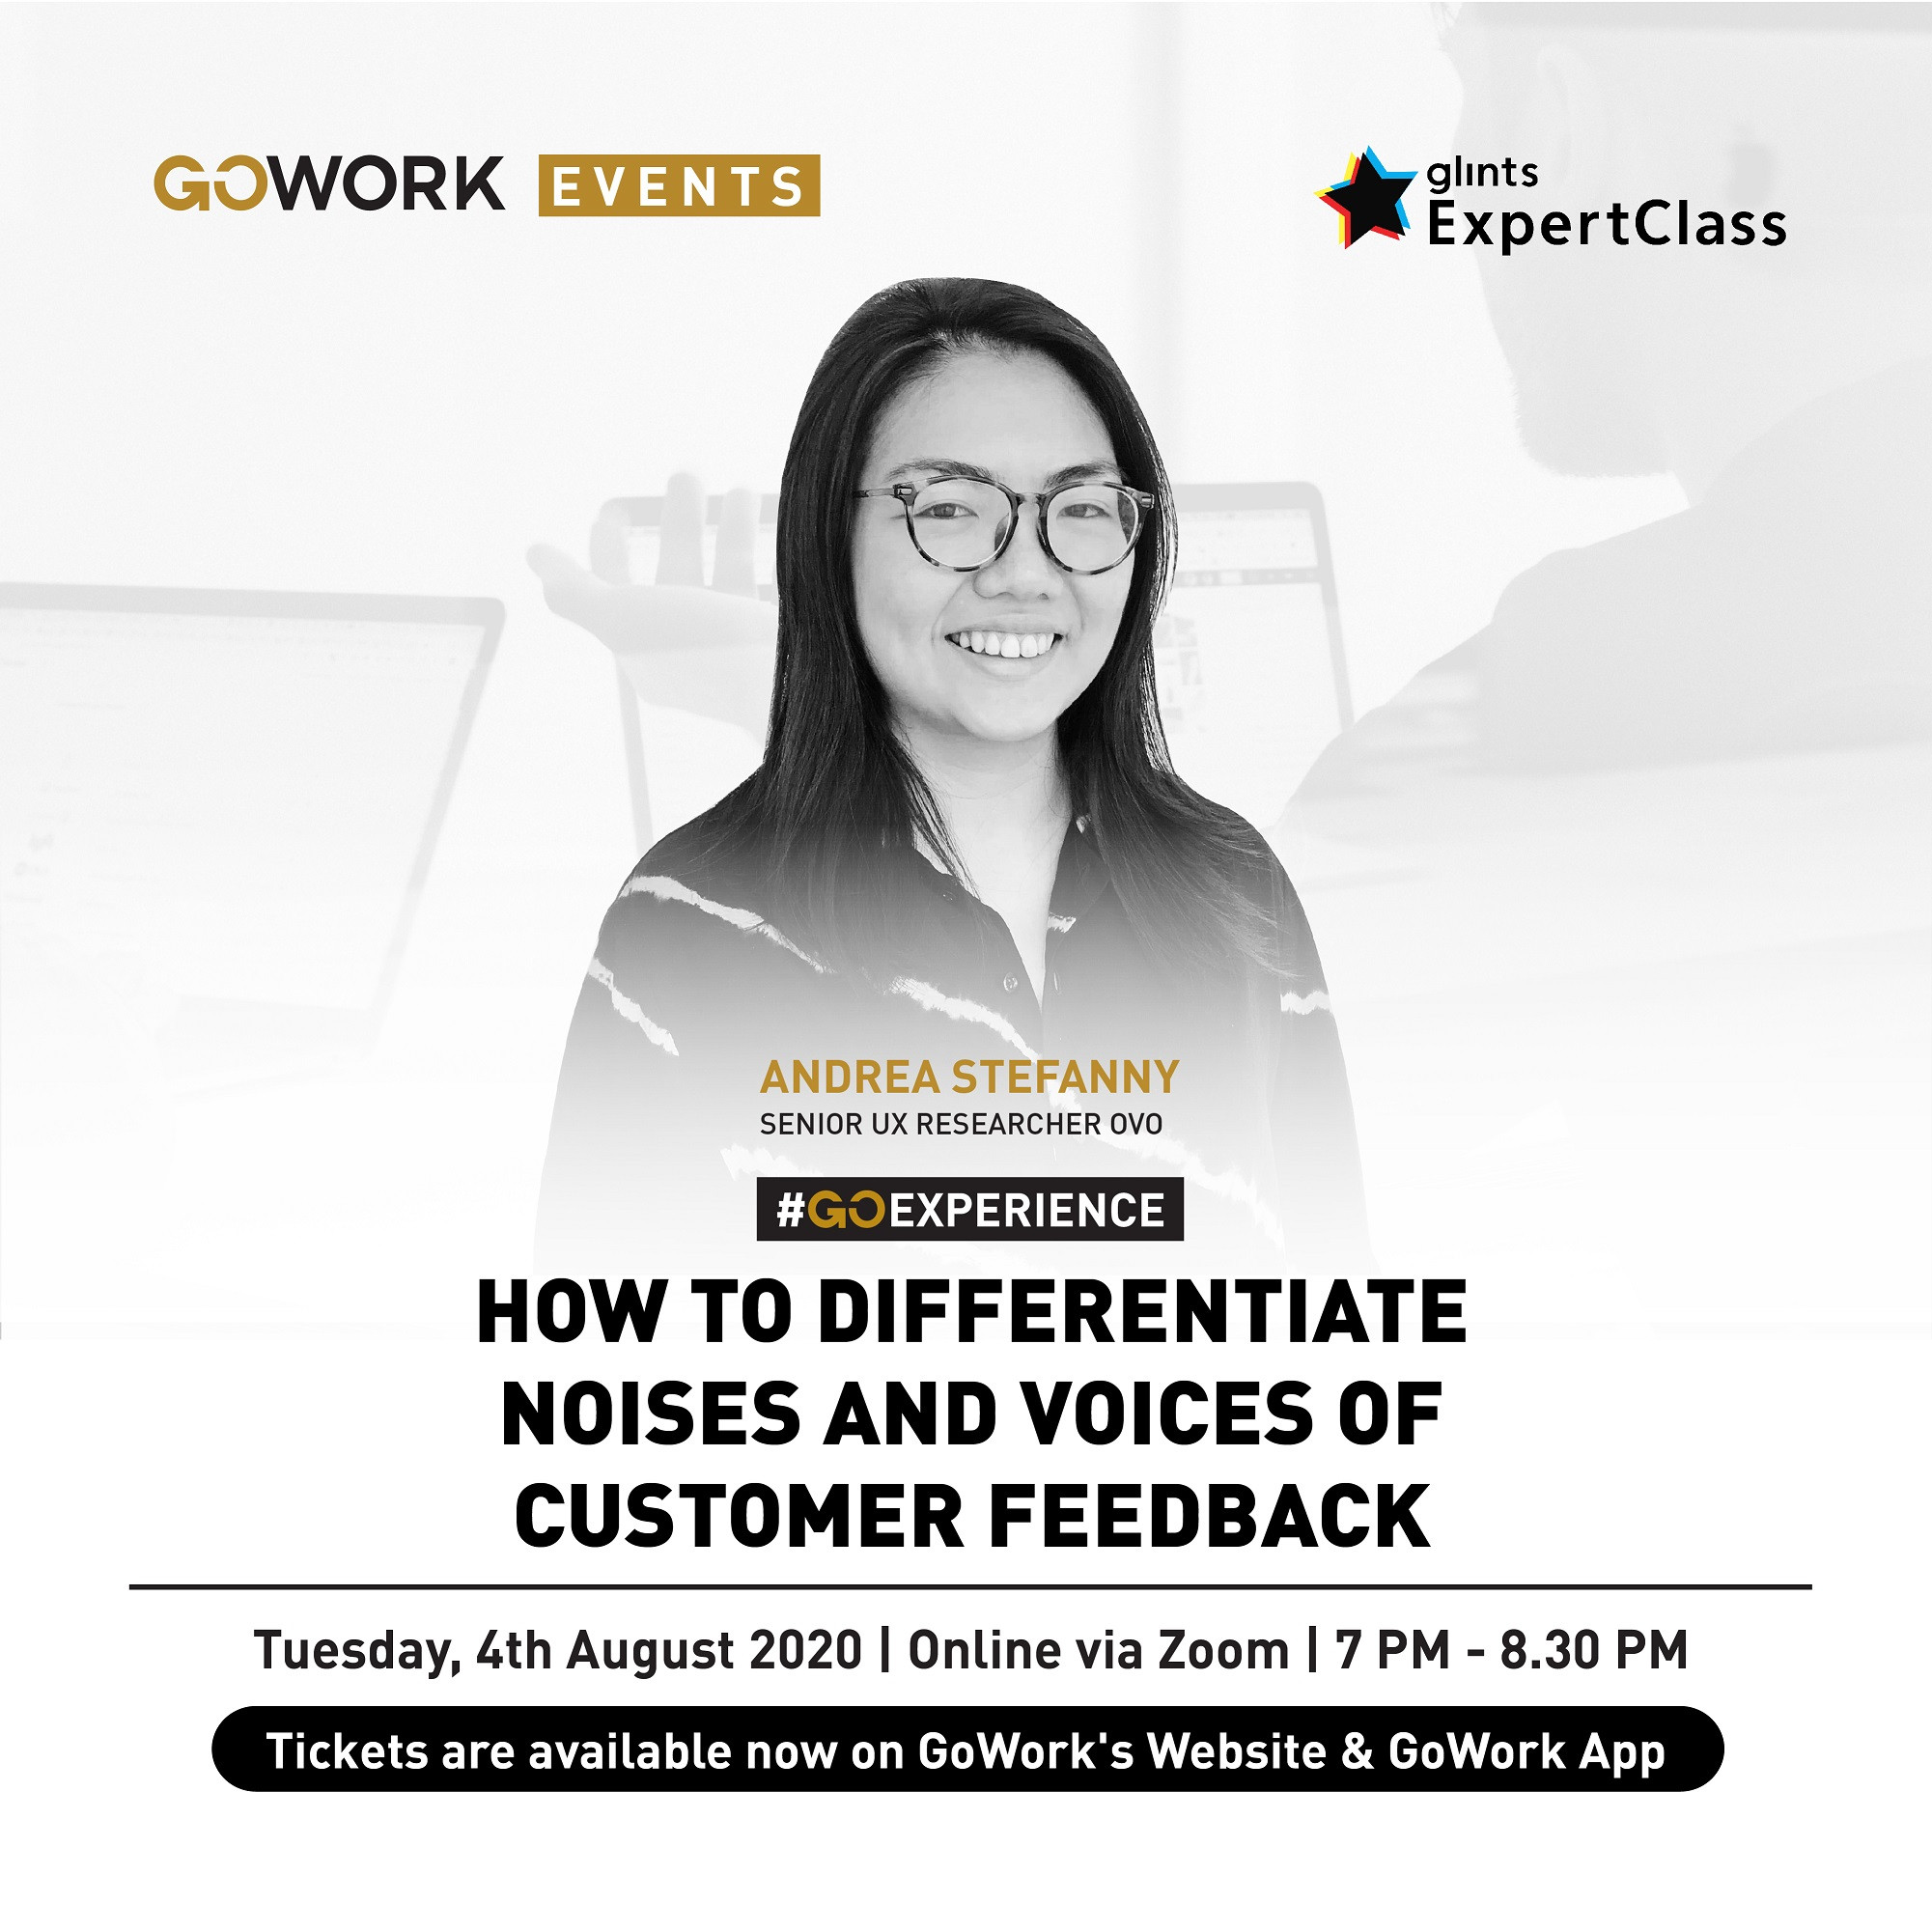 How to Differentiate Noises and Voices of Customer Feedback